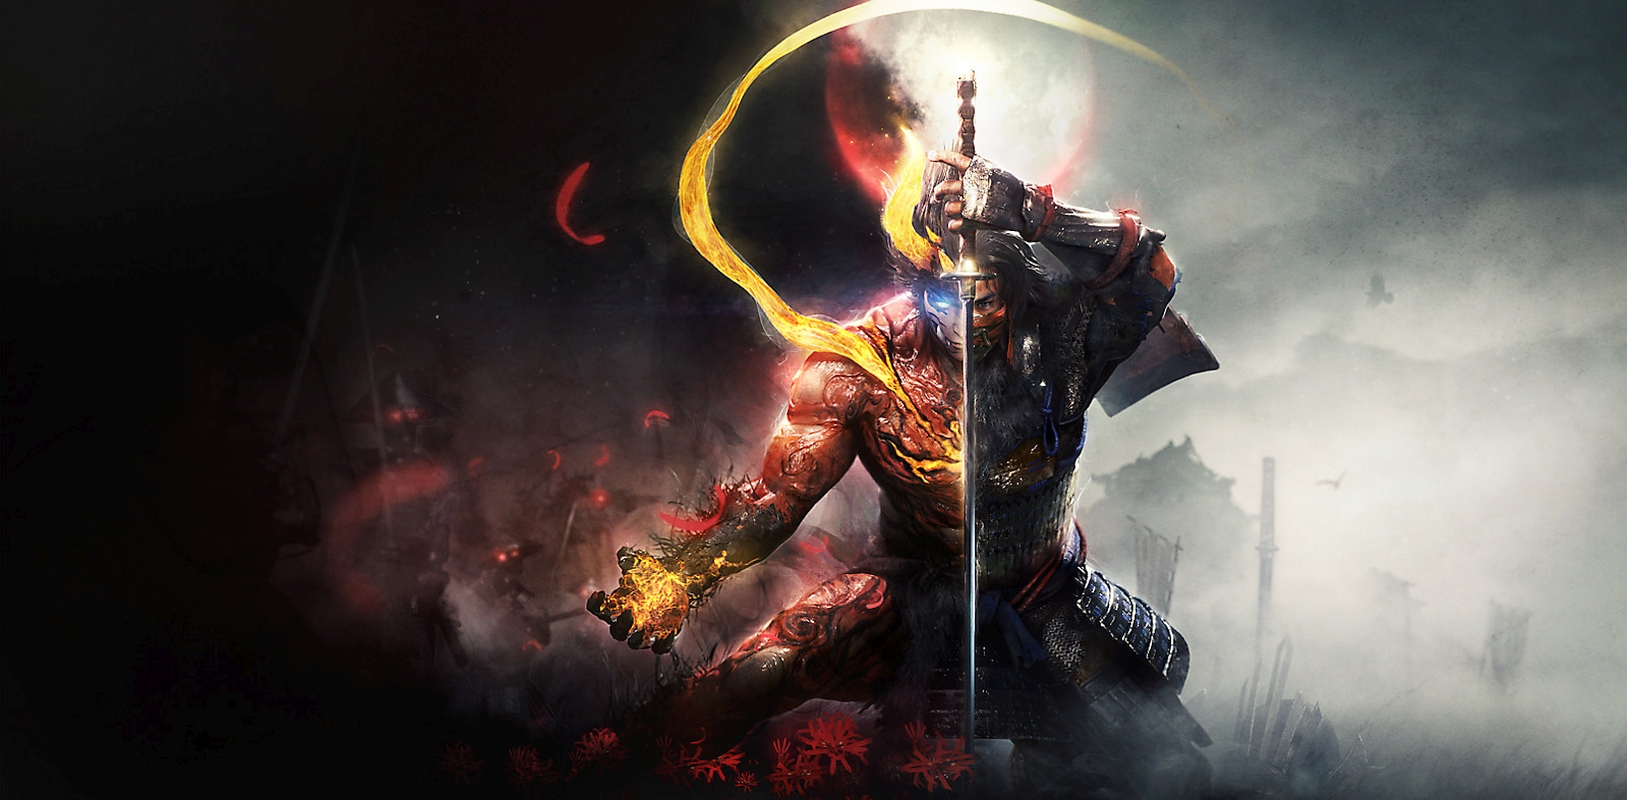 Koei Tecmo Will Release Final Nioh 2 Demo This Week Before The Game Launches